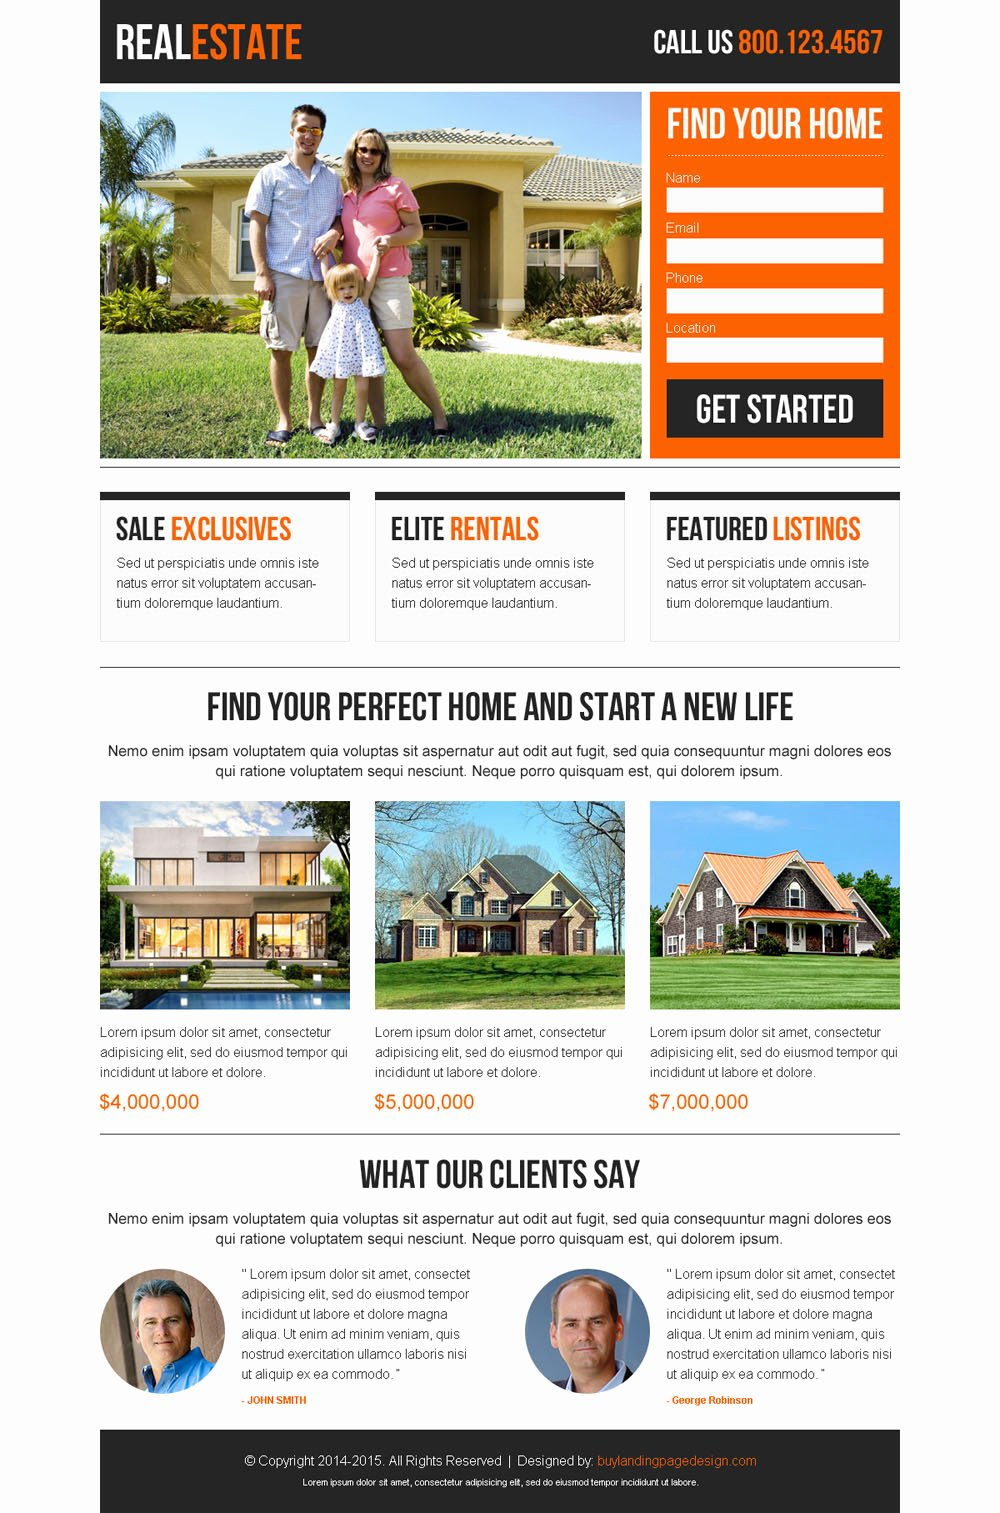 Best Converting Real Estate Landing Pages for Agents